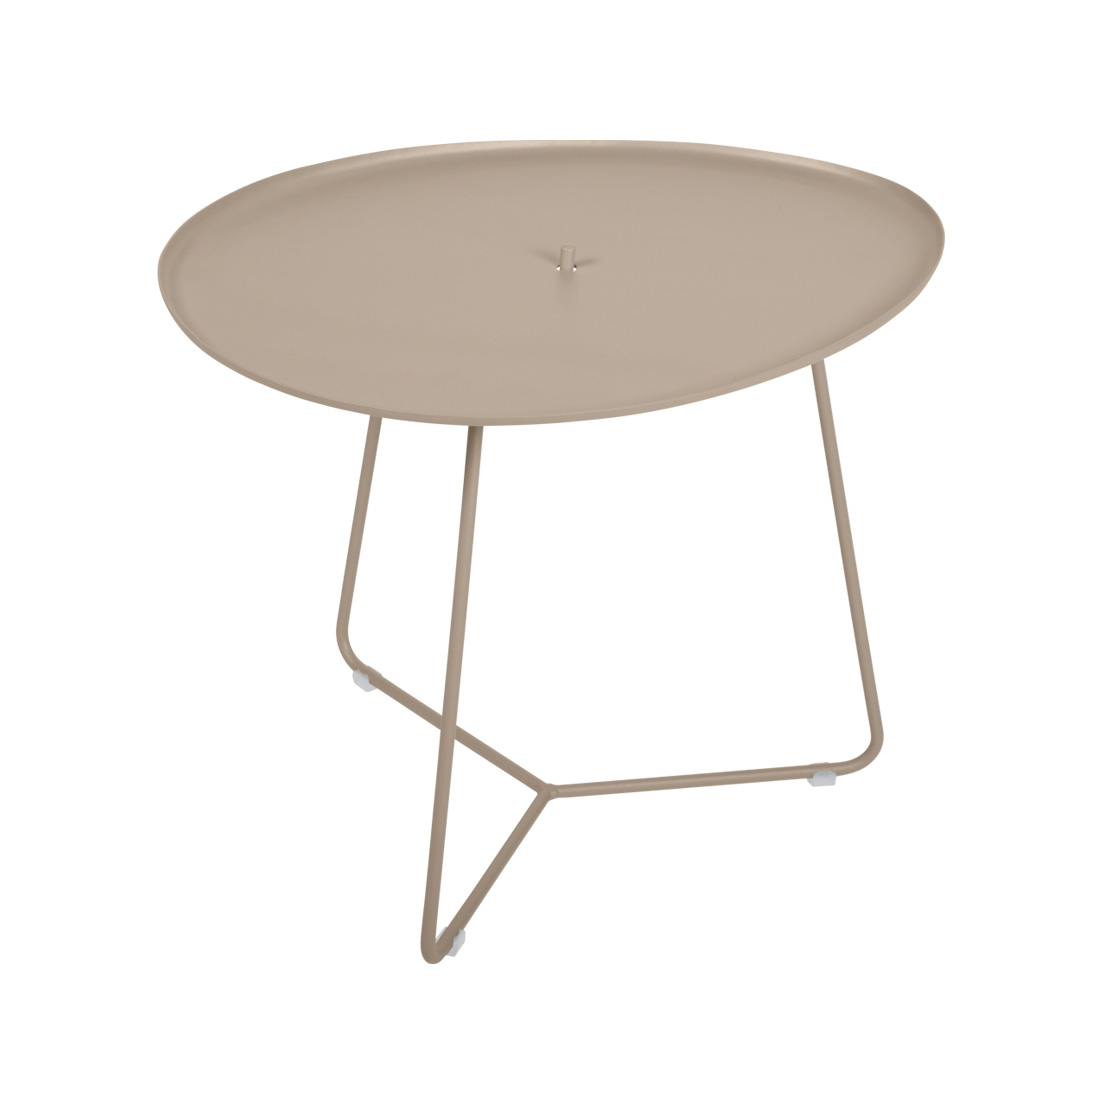 Cocotte low table, made by Fermob, available from le petit jardin